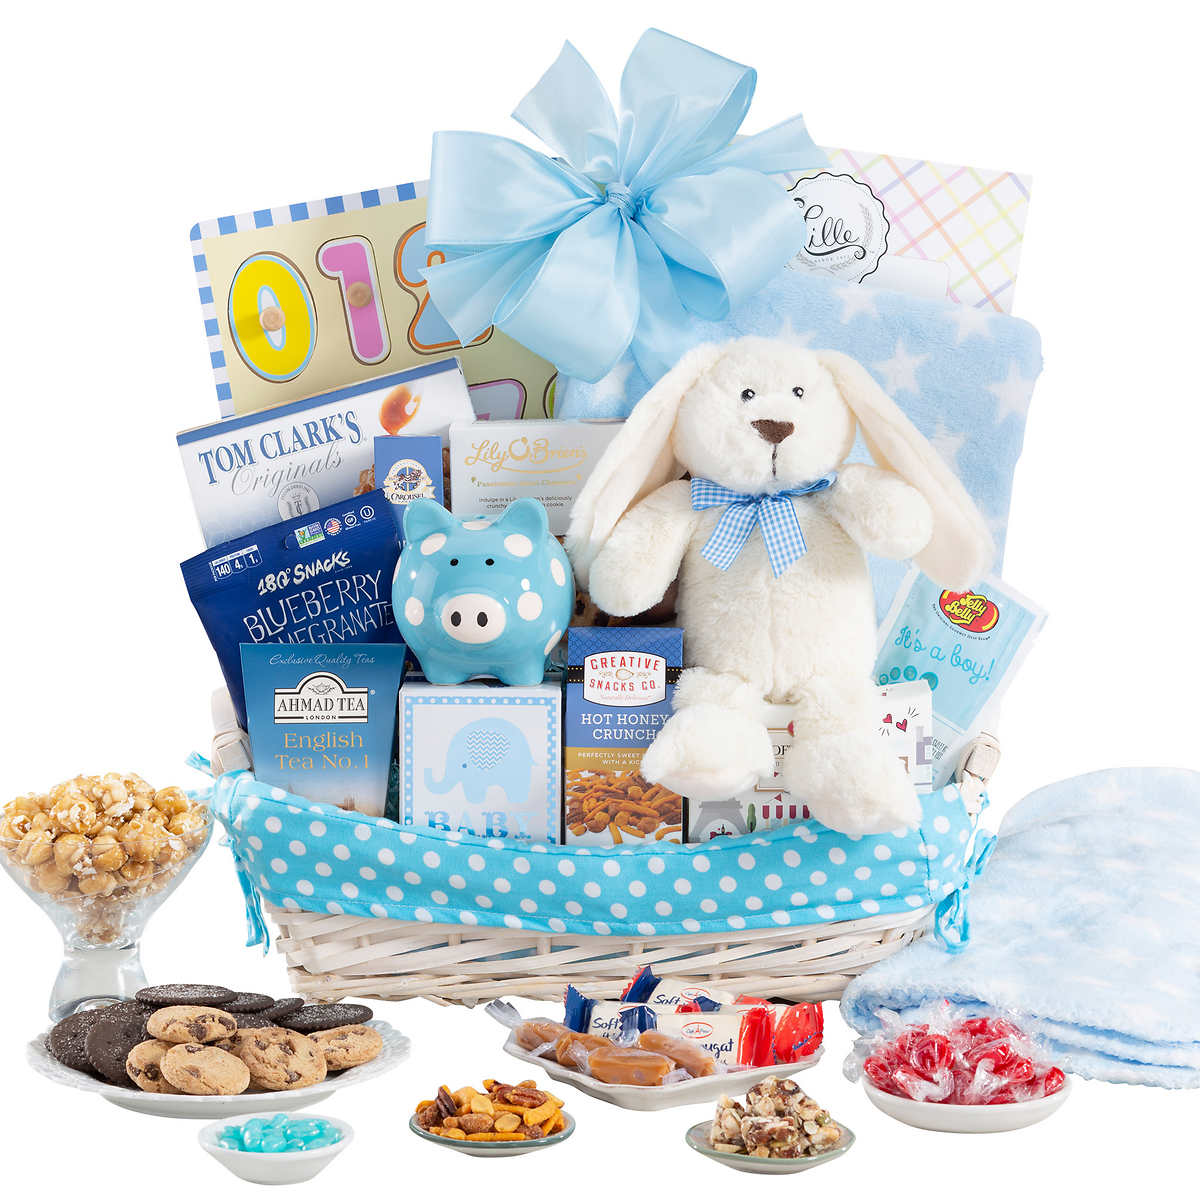 Baby Gift Baskets Delivered Uk : Baby gift baskets international shipping lamoureph